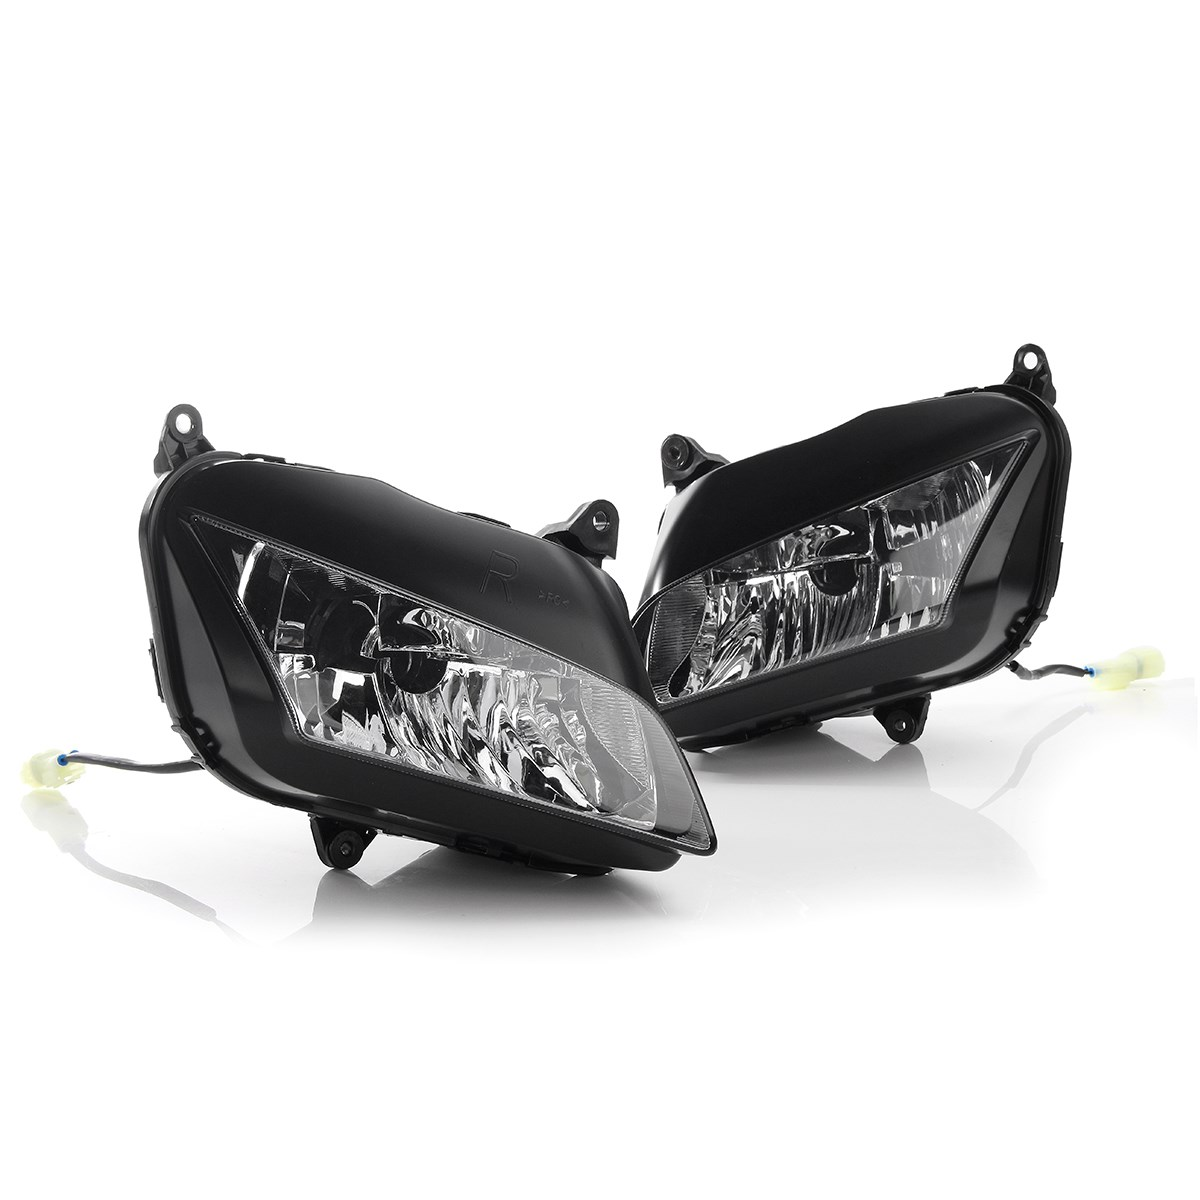 1 Pair Front Motorcycle Headlight Head Lamp Lens Assembly For Honda CBR600RR 2007/2008/2009/2010/2011/2012 arashi motorcycle radiator grille protective cover grill guard protector for 2008 2009 2010 2011 honda cbr1000rr cbr 1000 rr